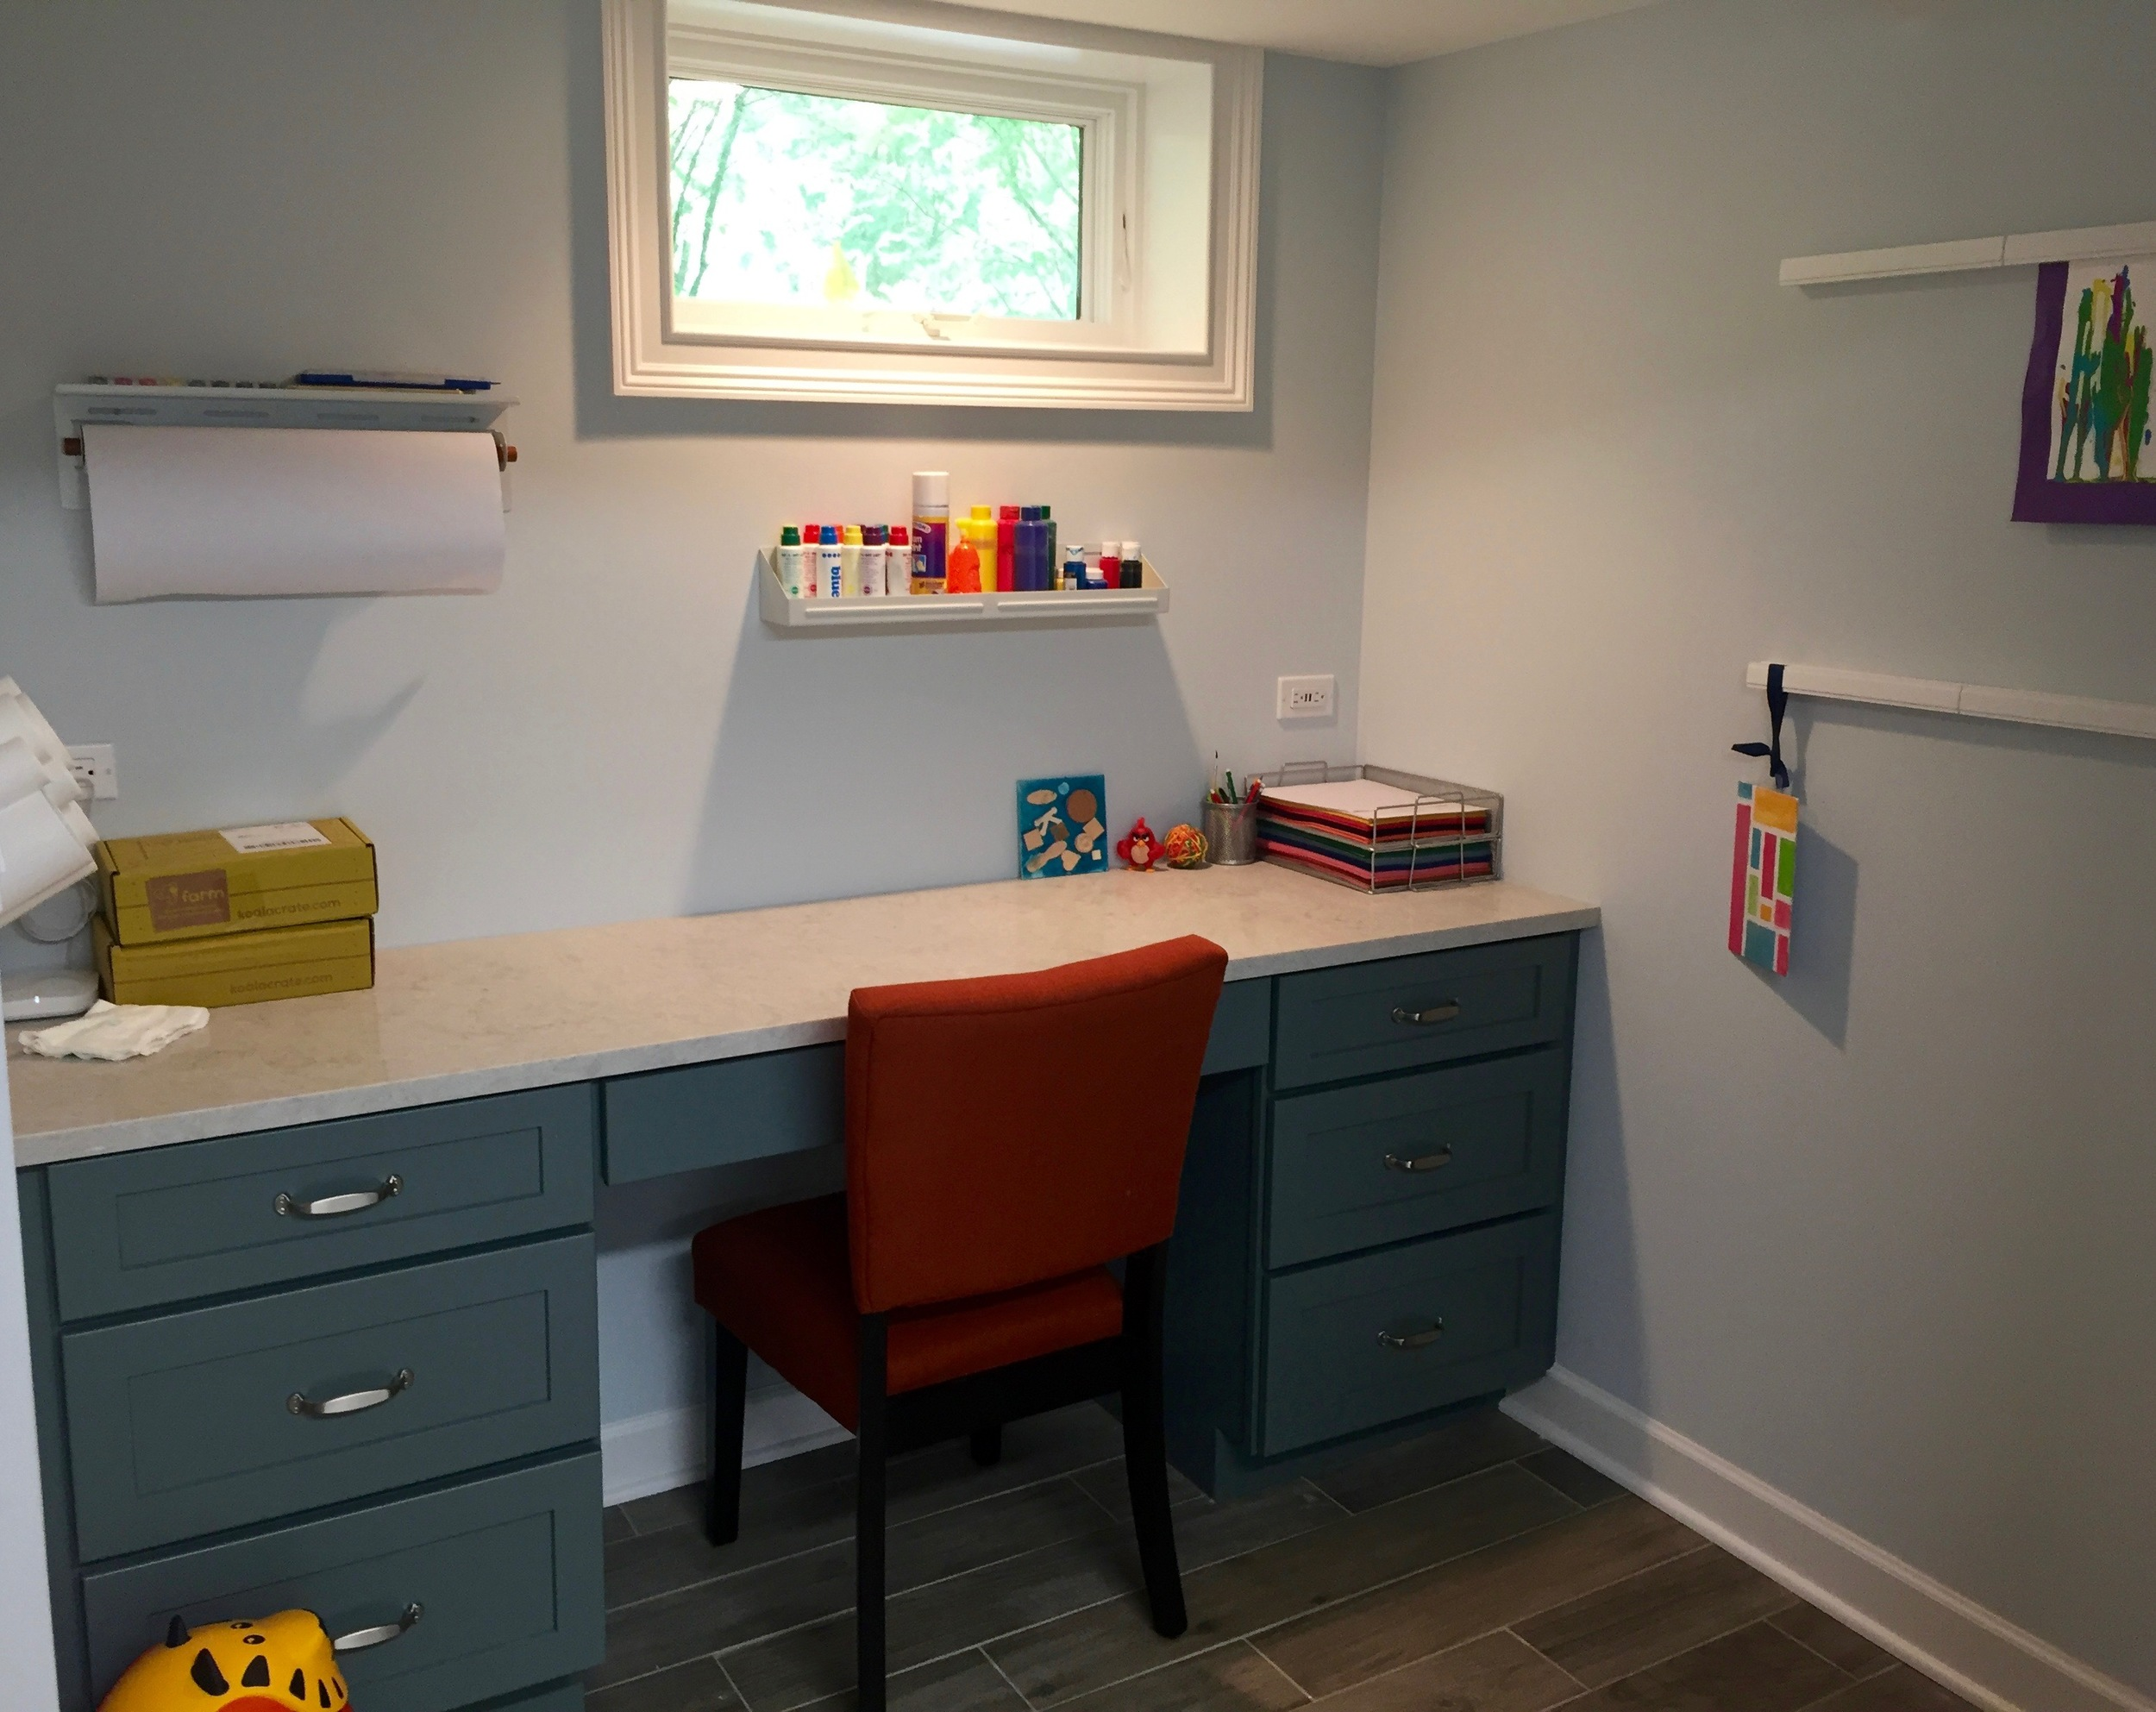 A desk with a quartz top offers storage and durability to resist paint, markers, and glue. Wall-mounted organizers keep art supplies contained above the work surface. Dual outlets with 4 USB ports accommodate electronic devices and, in the future, the space can be converted to a homework station.